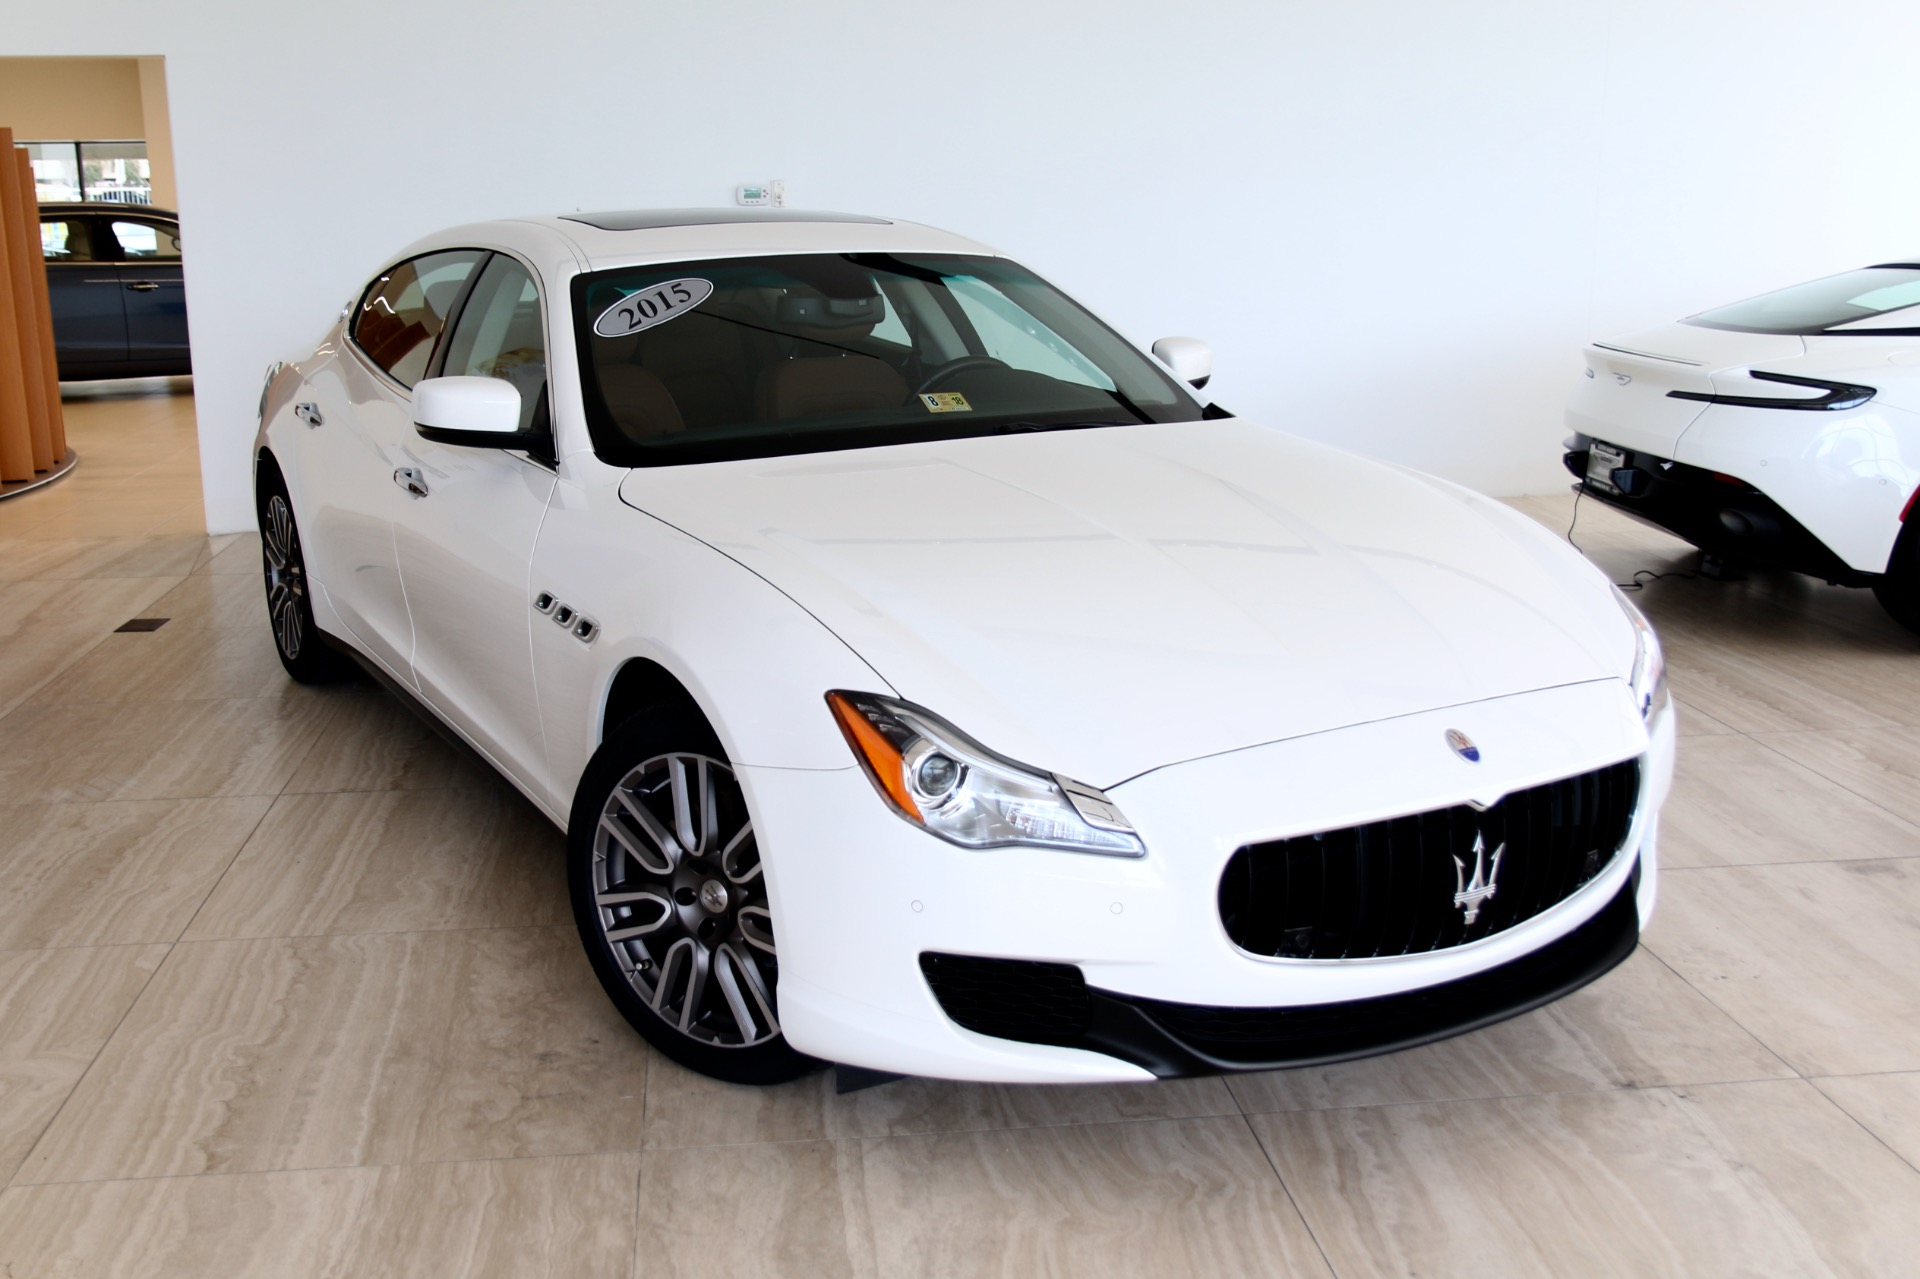 2015 Maserati Quattroporte >> 2015 Maserati Quattroporte S Q4 Stock 8n020625a For Sale